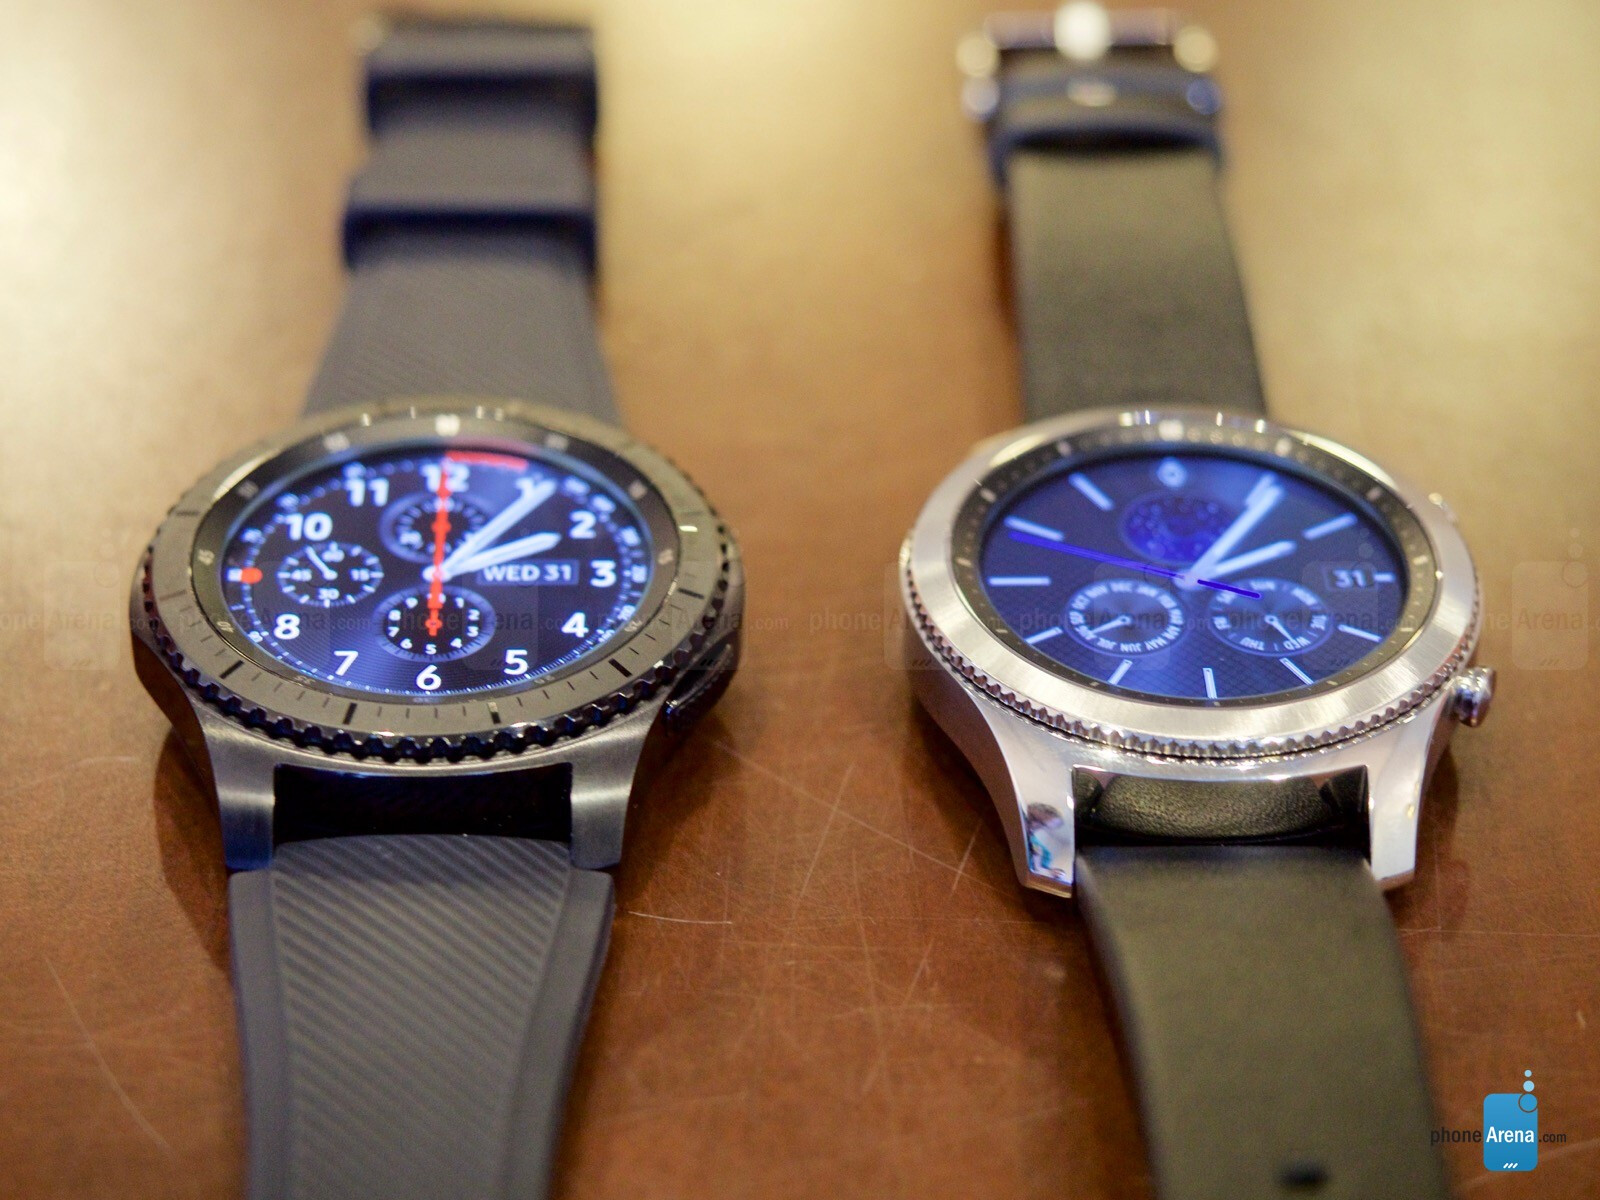 Samsung Gear S3 hands-on: Classic and Frontier versions ...